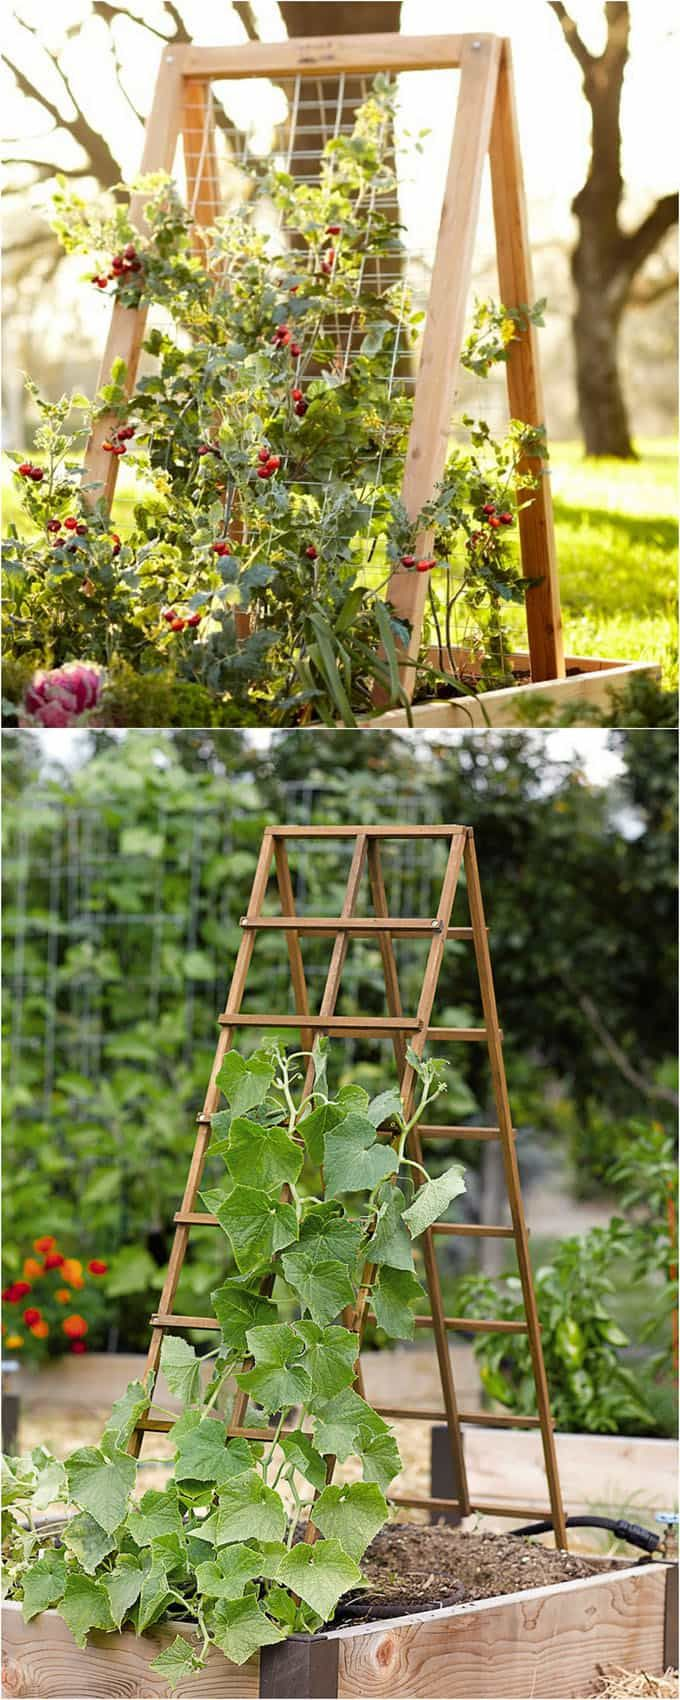 Vertical Gardening Trellis Ideas Part - 28: 21 Easy DIY Trellis U0026 Vertical Garden Structures - Page 2 Of 3